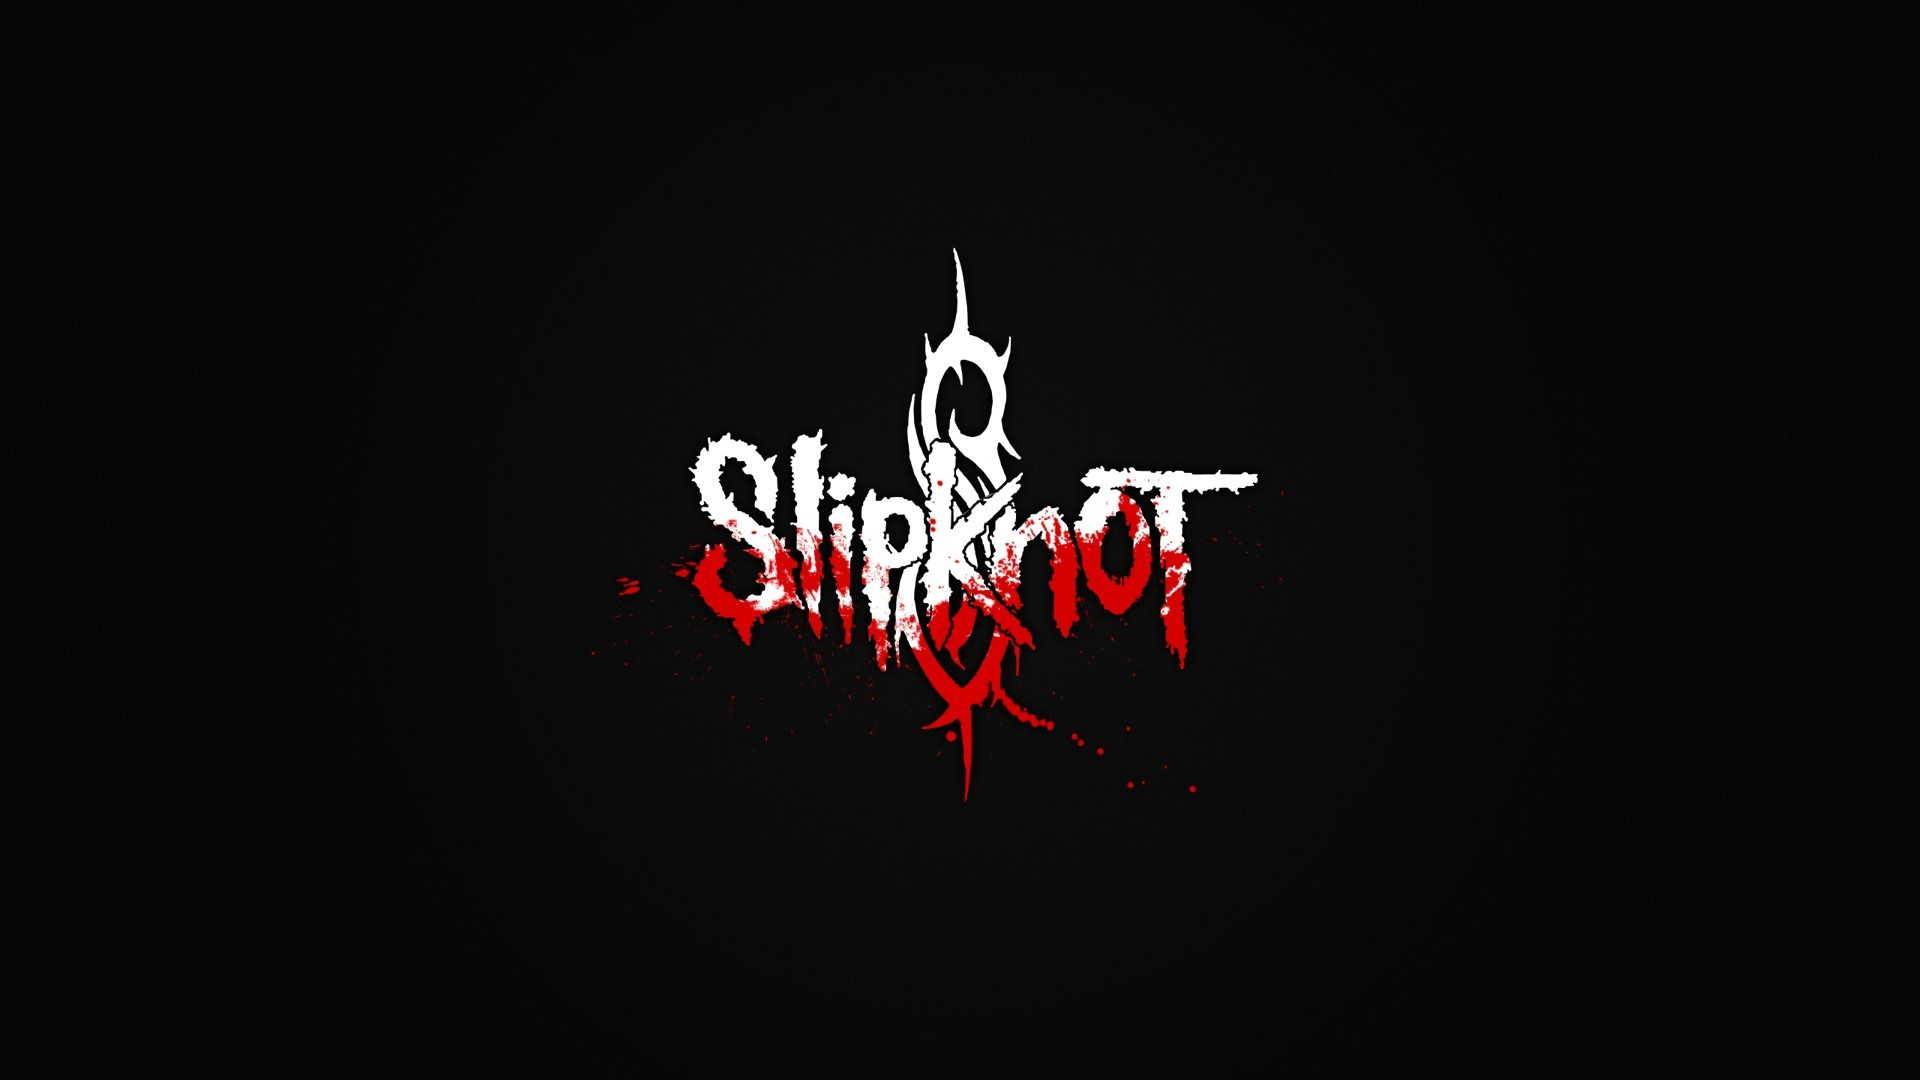 Slipknot Wallpapers, Pictures, Images